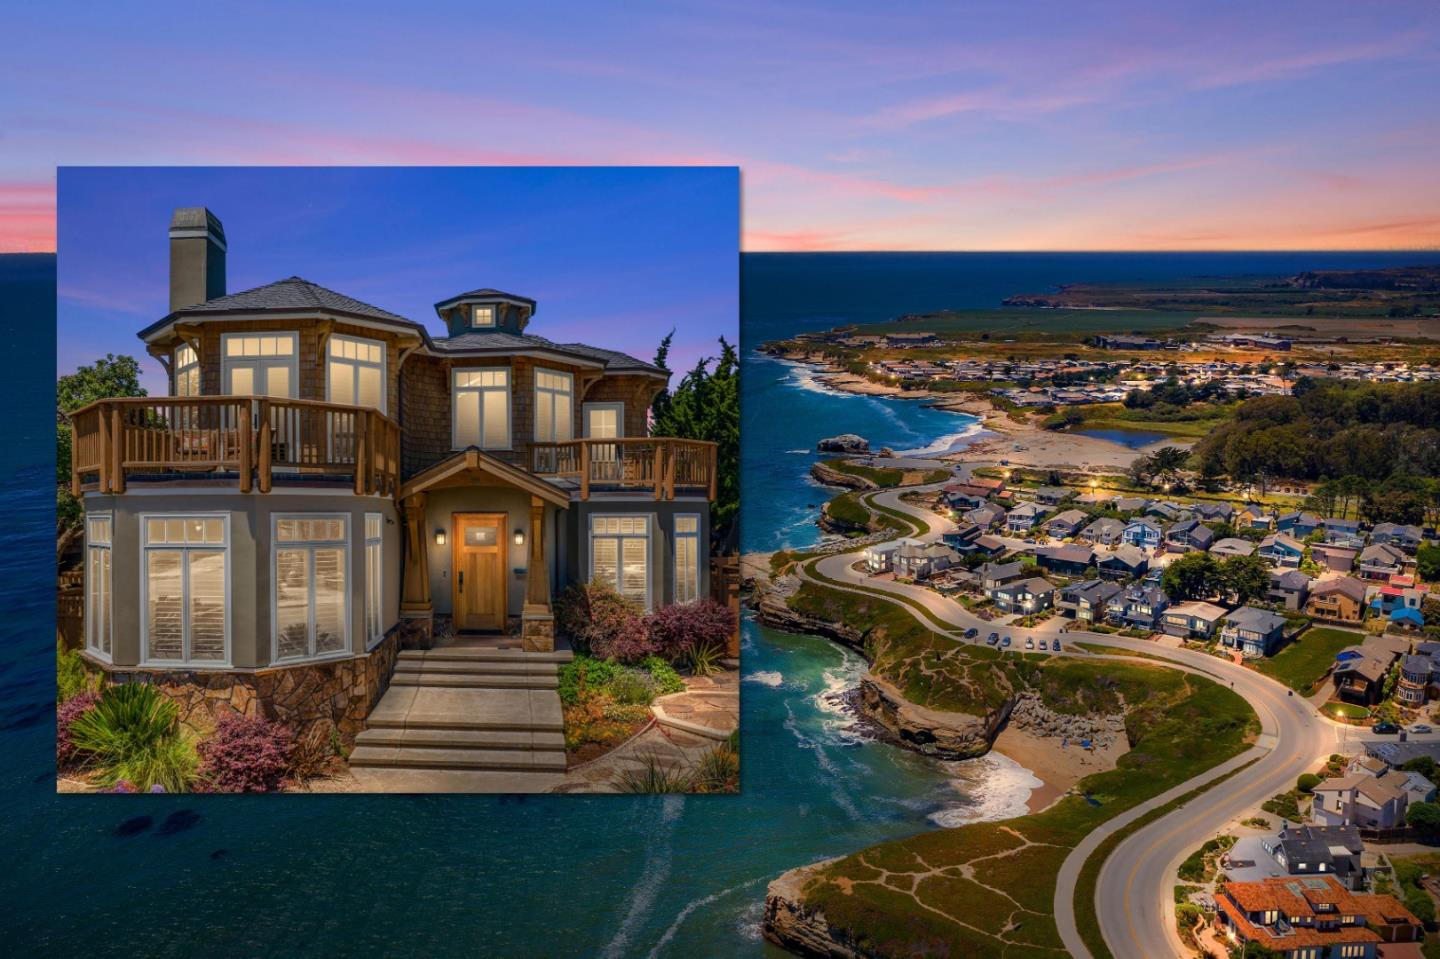 Oceanfront and restored to new in 2018, this stunning home built by Meschi Construction in 2008 is truly one of a kind. 103 Auburn Avenue is an architectural masterpiece, an ode to classic elegance and a nautical craftsman aesthetic. Expansive windows offer sweeping ocean views and sparkling lights of the expansive Monterey Bay. Experience a daily display of sea life, from otters, seals, dolphins and humpback whales, from the luxury of this unique home. Bordered by the Santa Cruz Municipal Wharf and Natural Bridges State Beach, and fronted by the Monterey Bay, West Cliff is an oasis within the city.